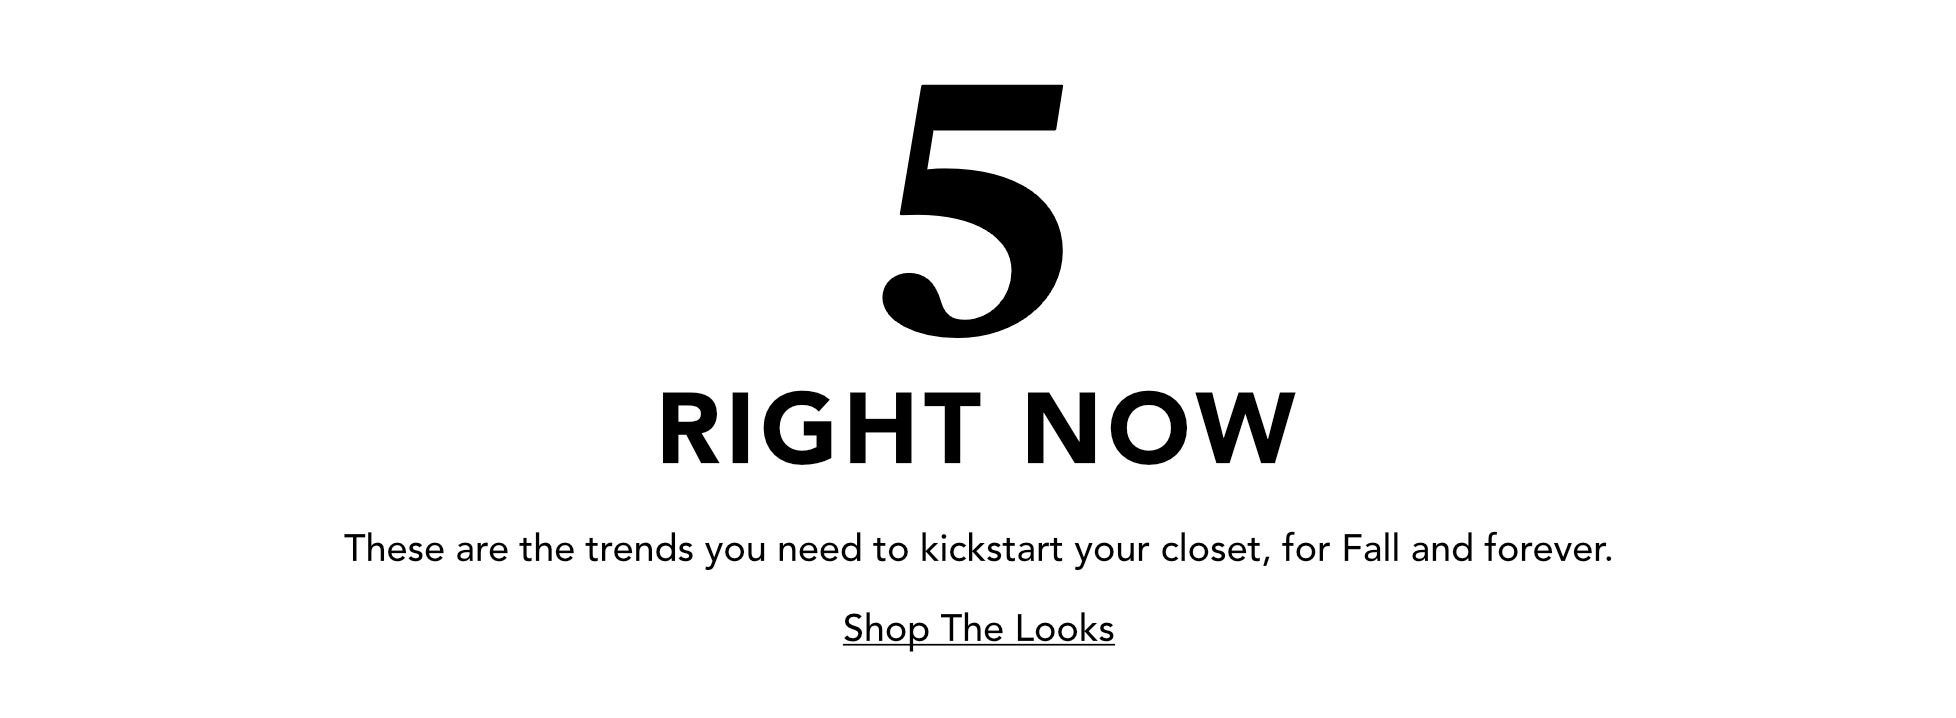 5 RIGHT NOW - Shop The Looks